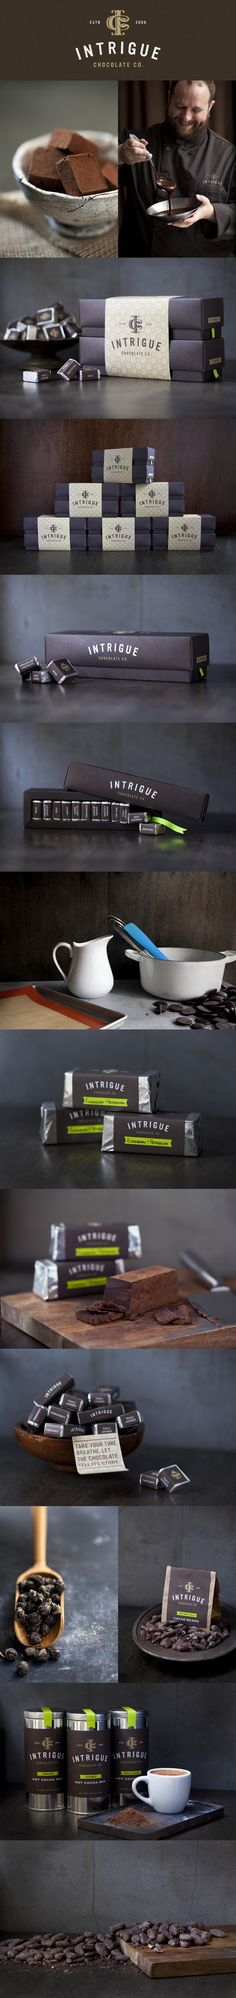 Intrigue Chocolate Co. by Jason Grube, via Behance